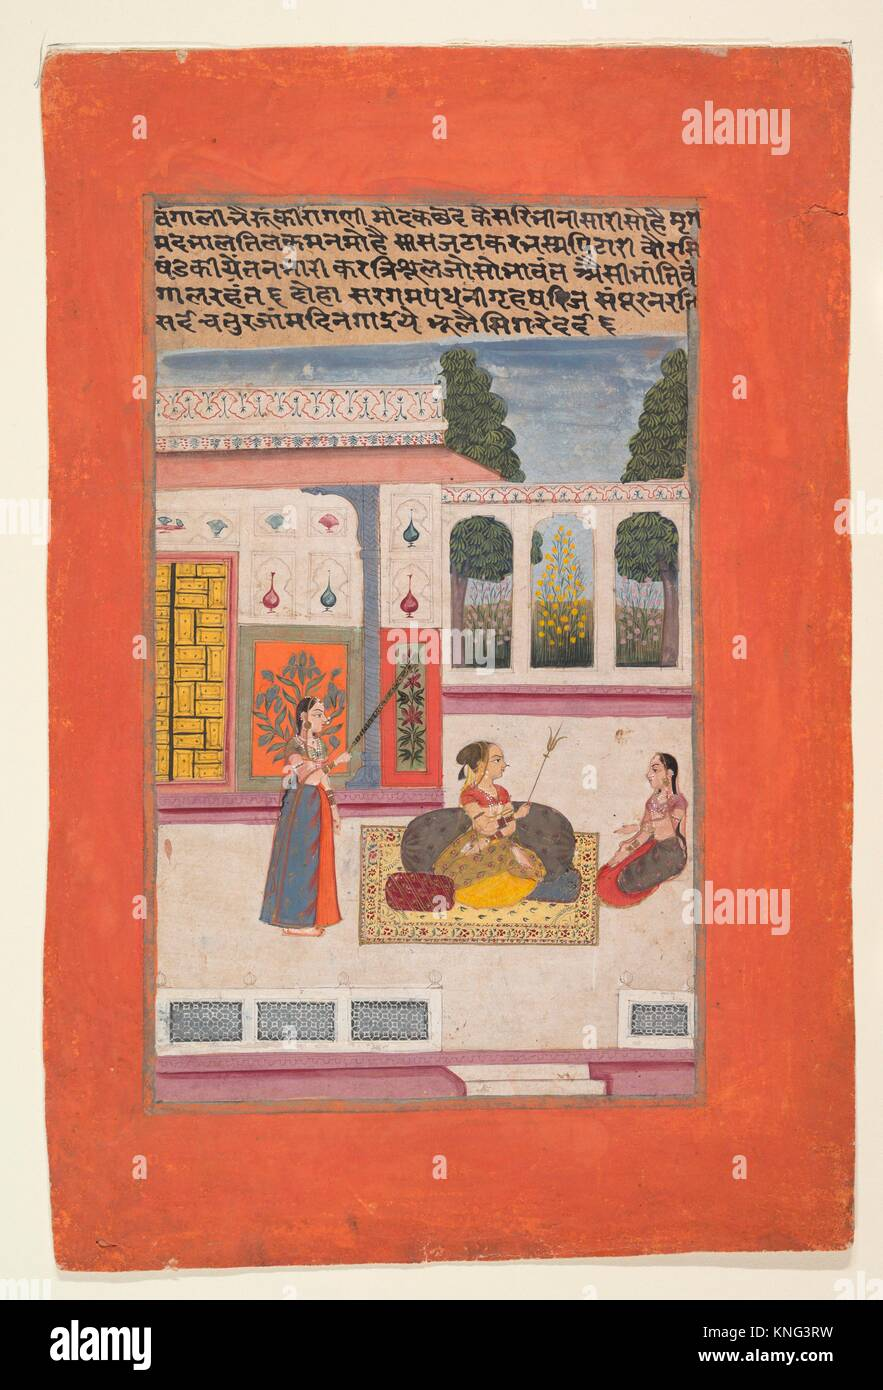 Bangali Ragini: Folio from a ragamala series (Garland of Musical Modes). Date: 1709; Culture: India (Rajasthan, - Stock Image